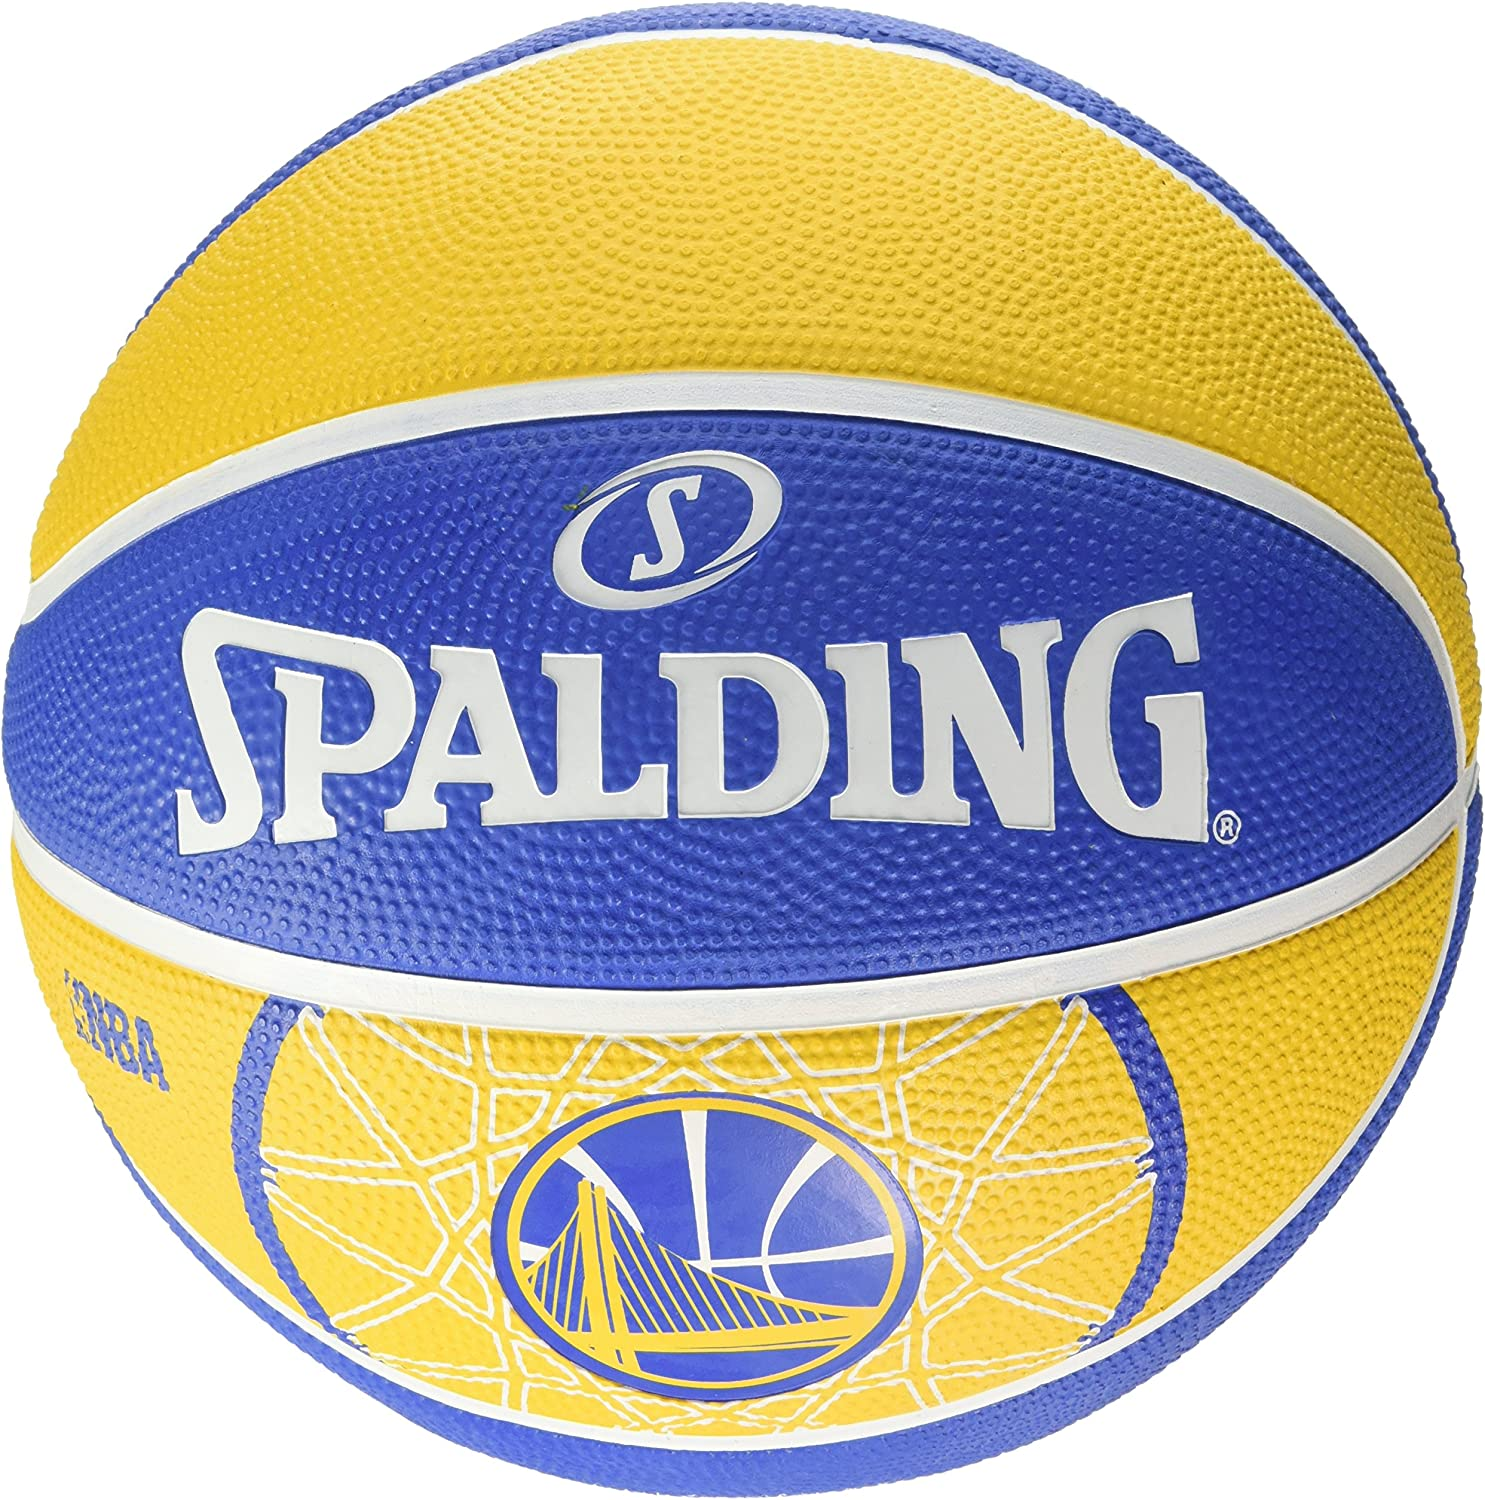 Spalding Ball NBA Team Golden State 83 – 303z, Amarillo/Azul, 5 ...